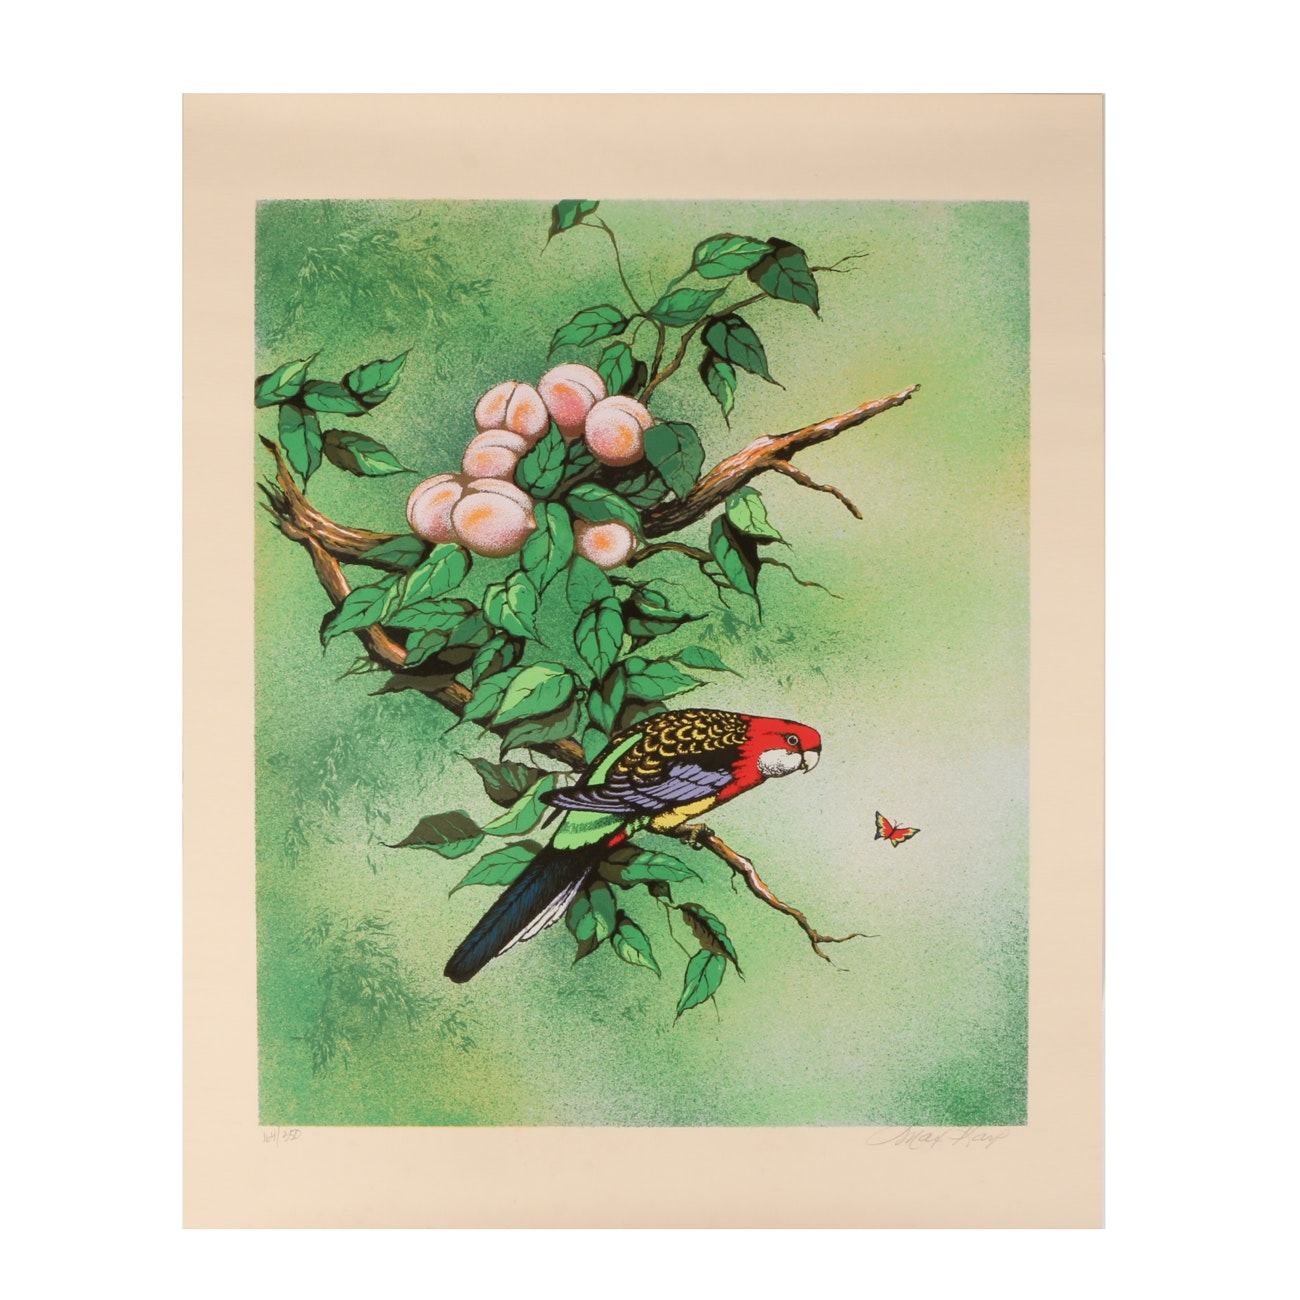 Max Karp Limited Edition Serigraph of Parrots